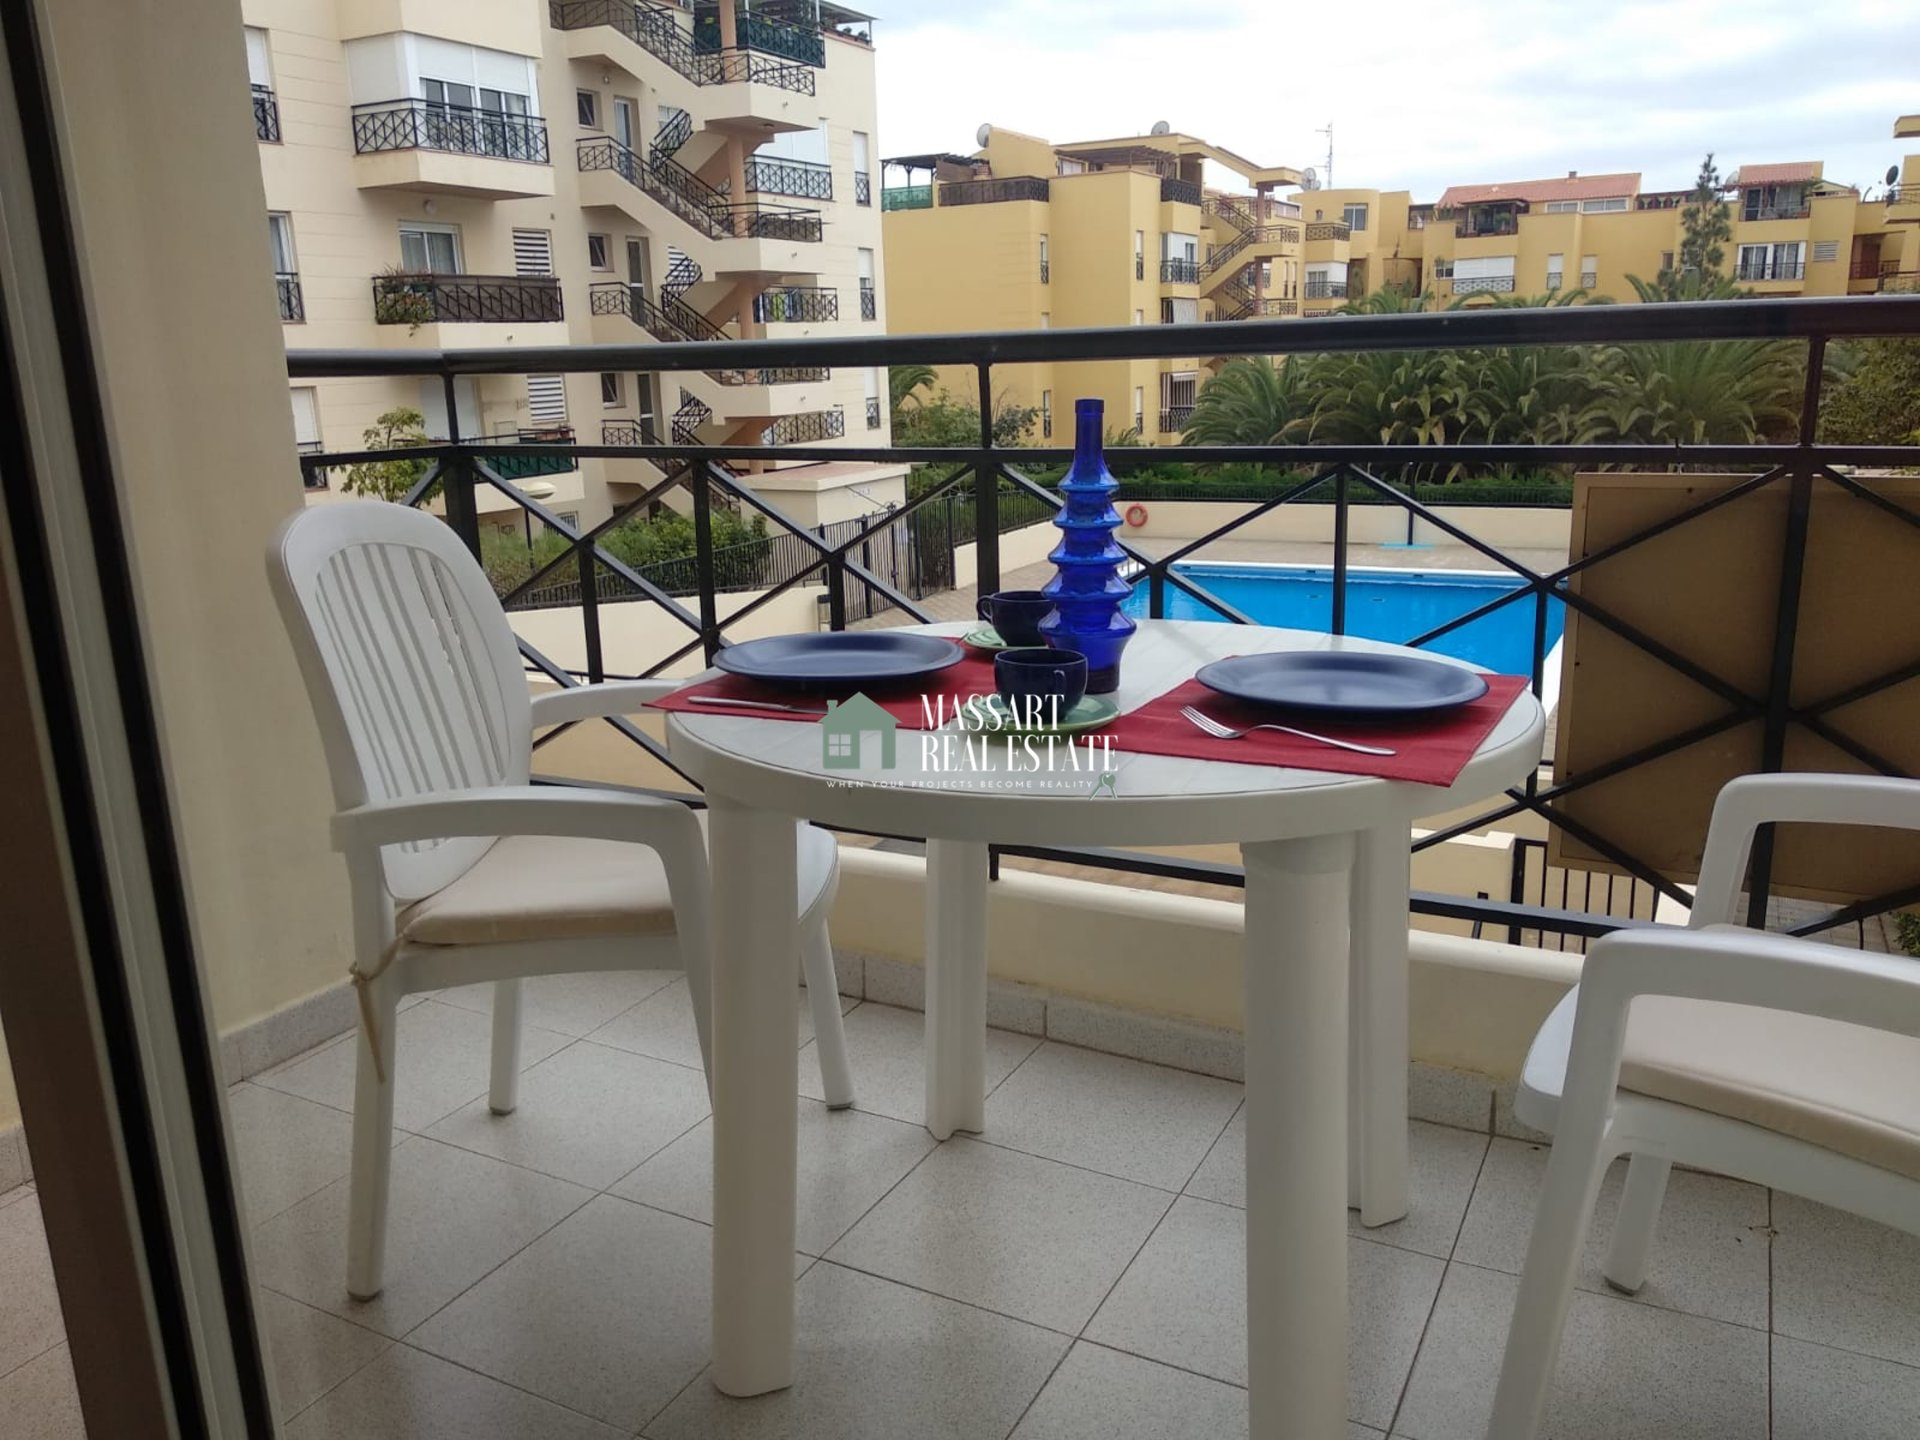 For sale in Parque de la Reina (Arona), 65 m2 apartment located on the first floor with all the amenities in its surroundings.